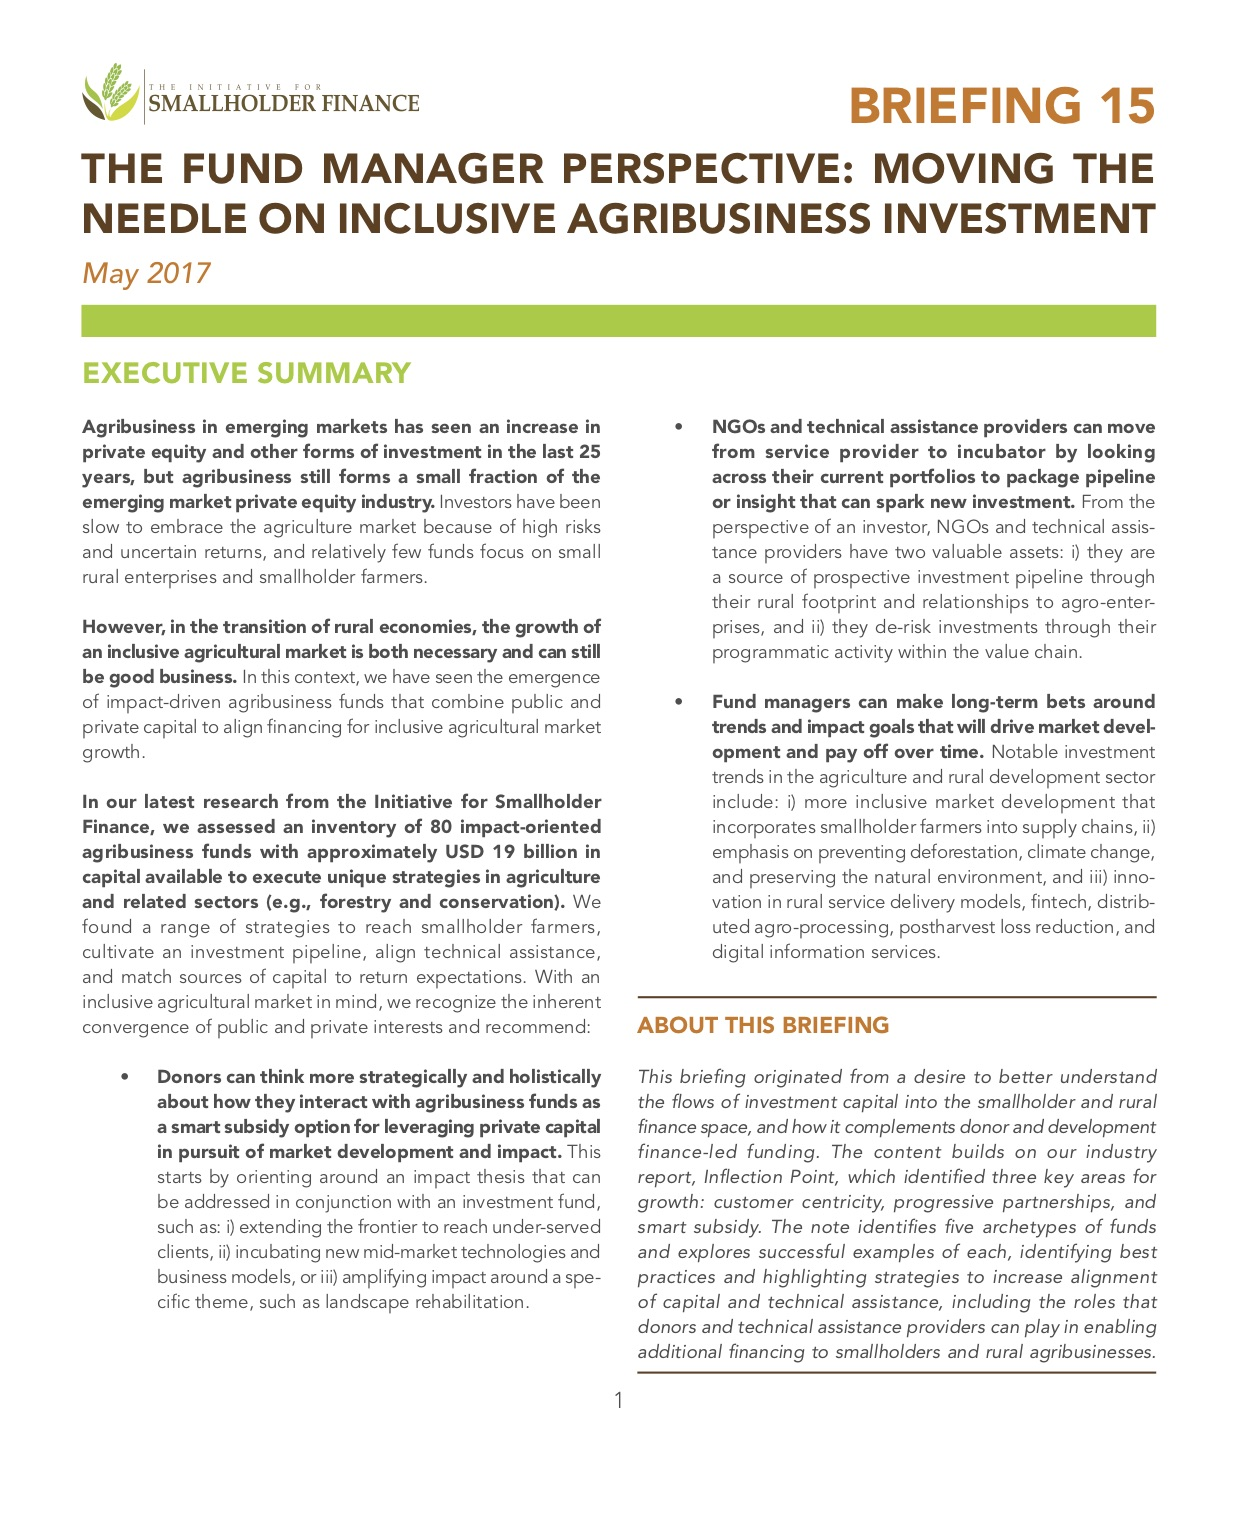 The Fund Manager Perspective: Moving the Needle on Inclusive Agribusiness Investment